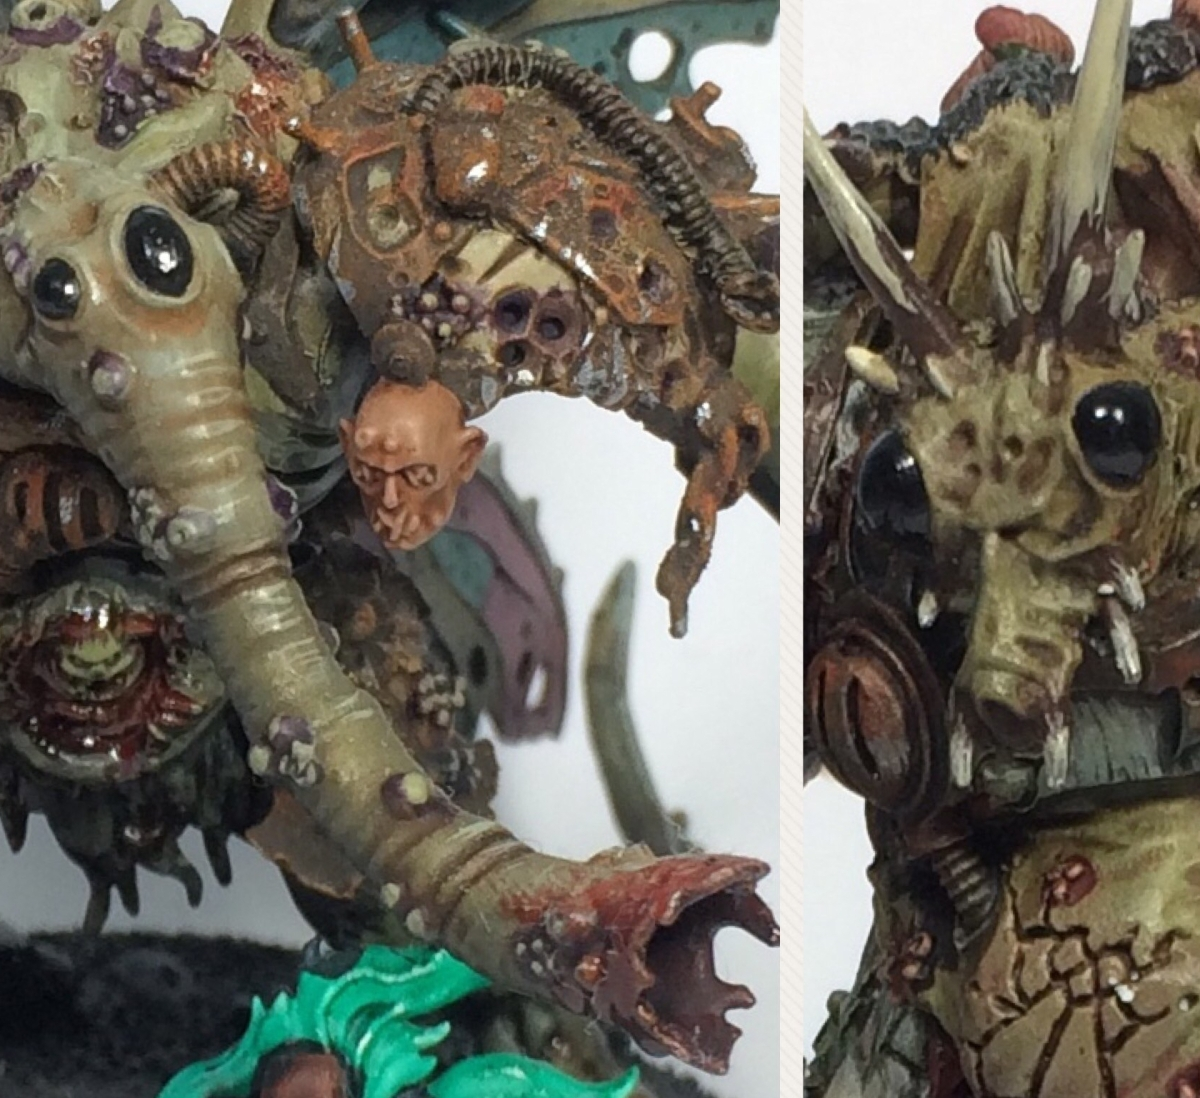 They've drunk all your milkshake - Two Nurgle daemon princes